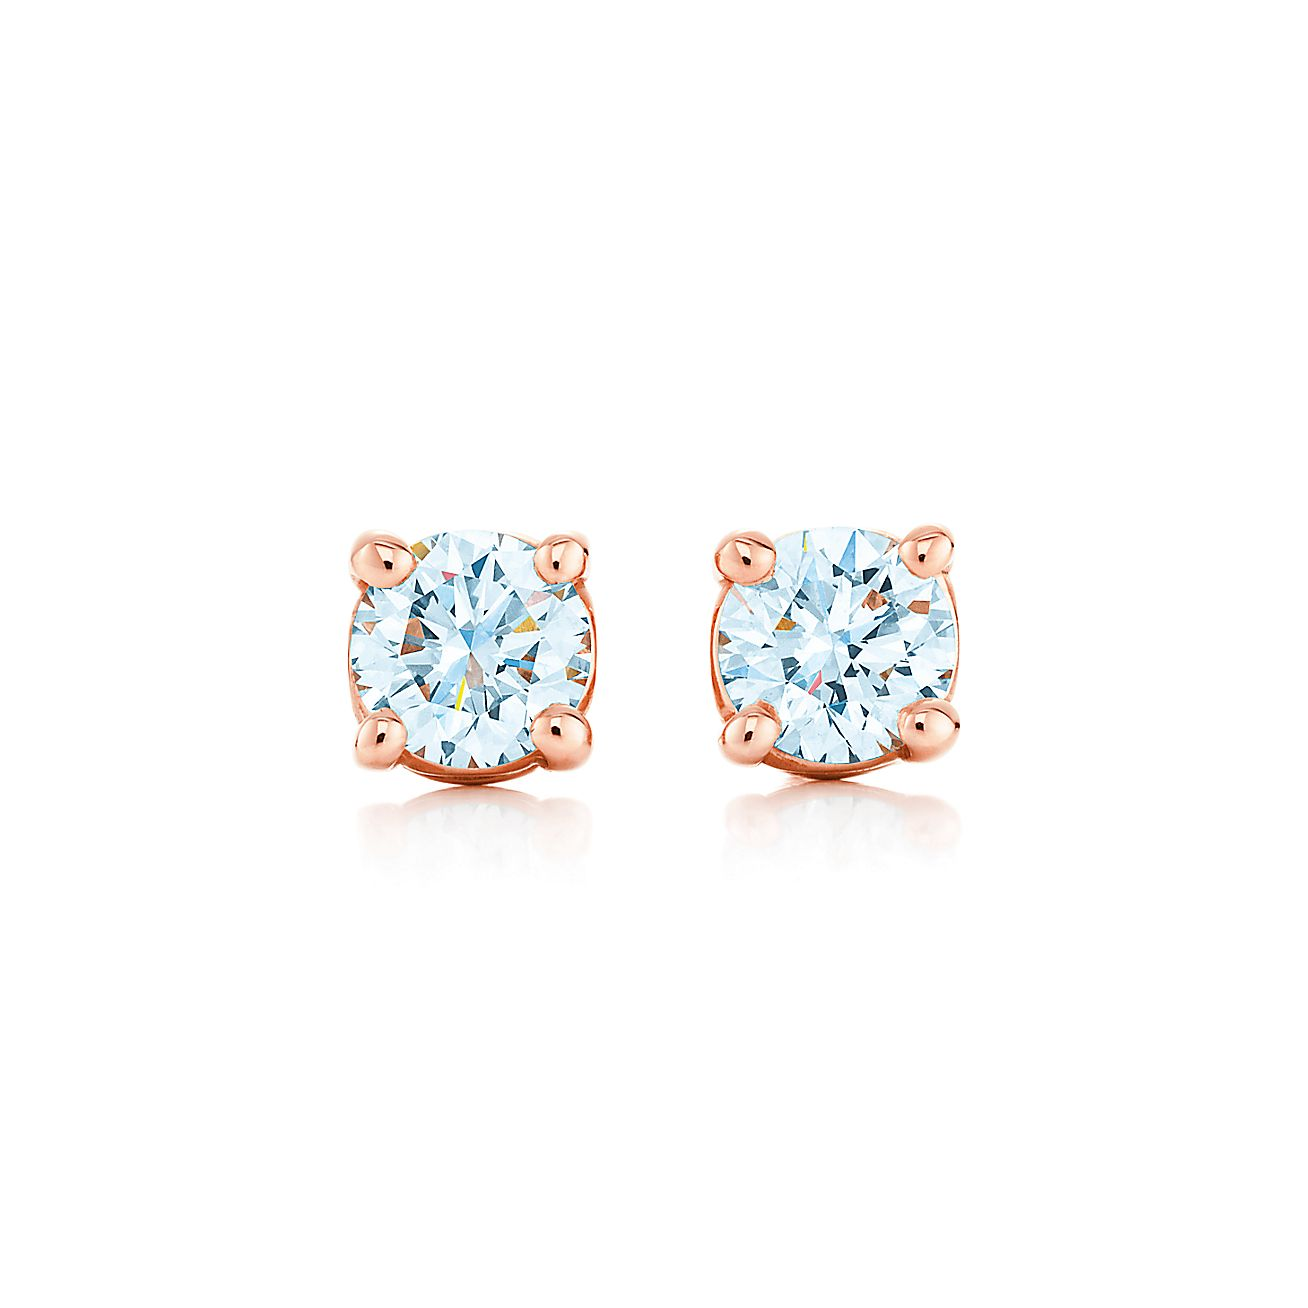 cut gld jewellery copy earring earrings round the products shop pair stud diamond earings of